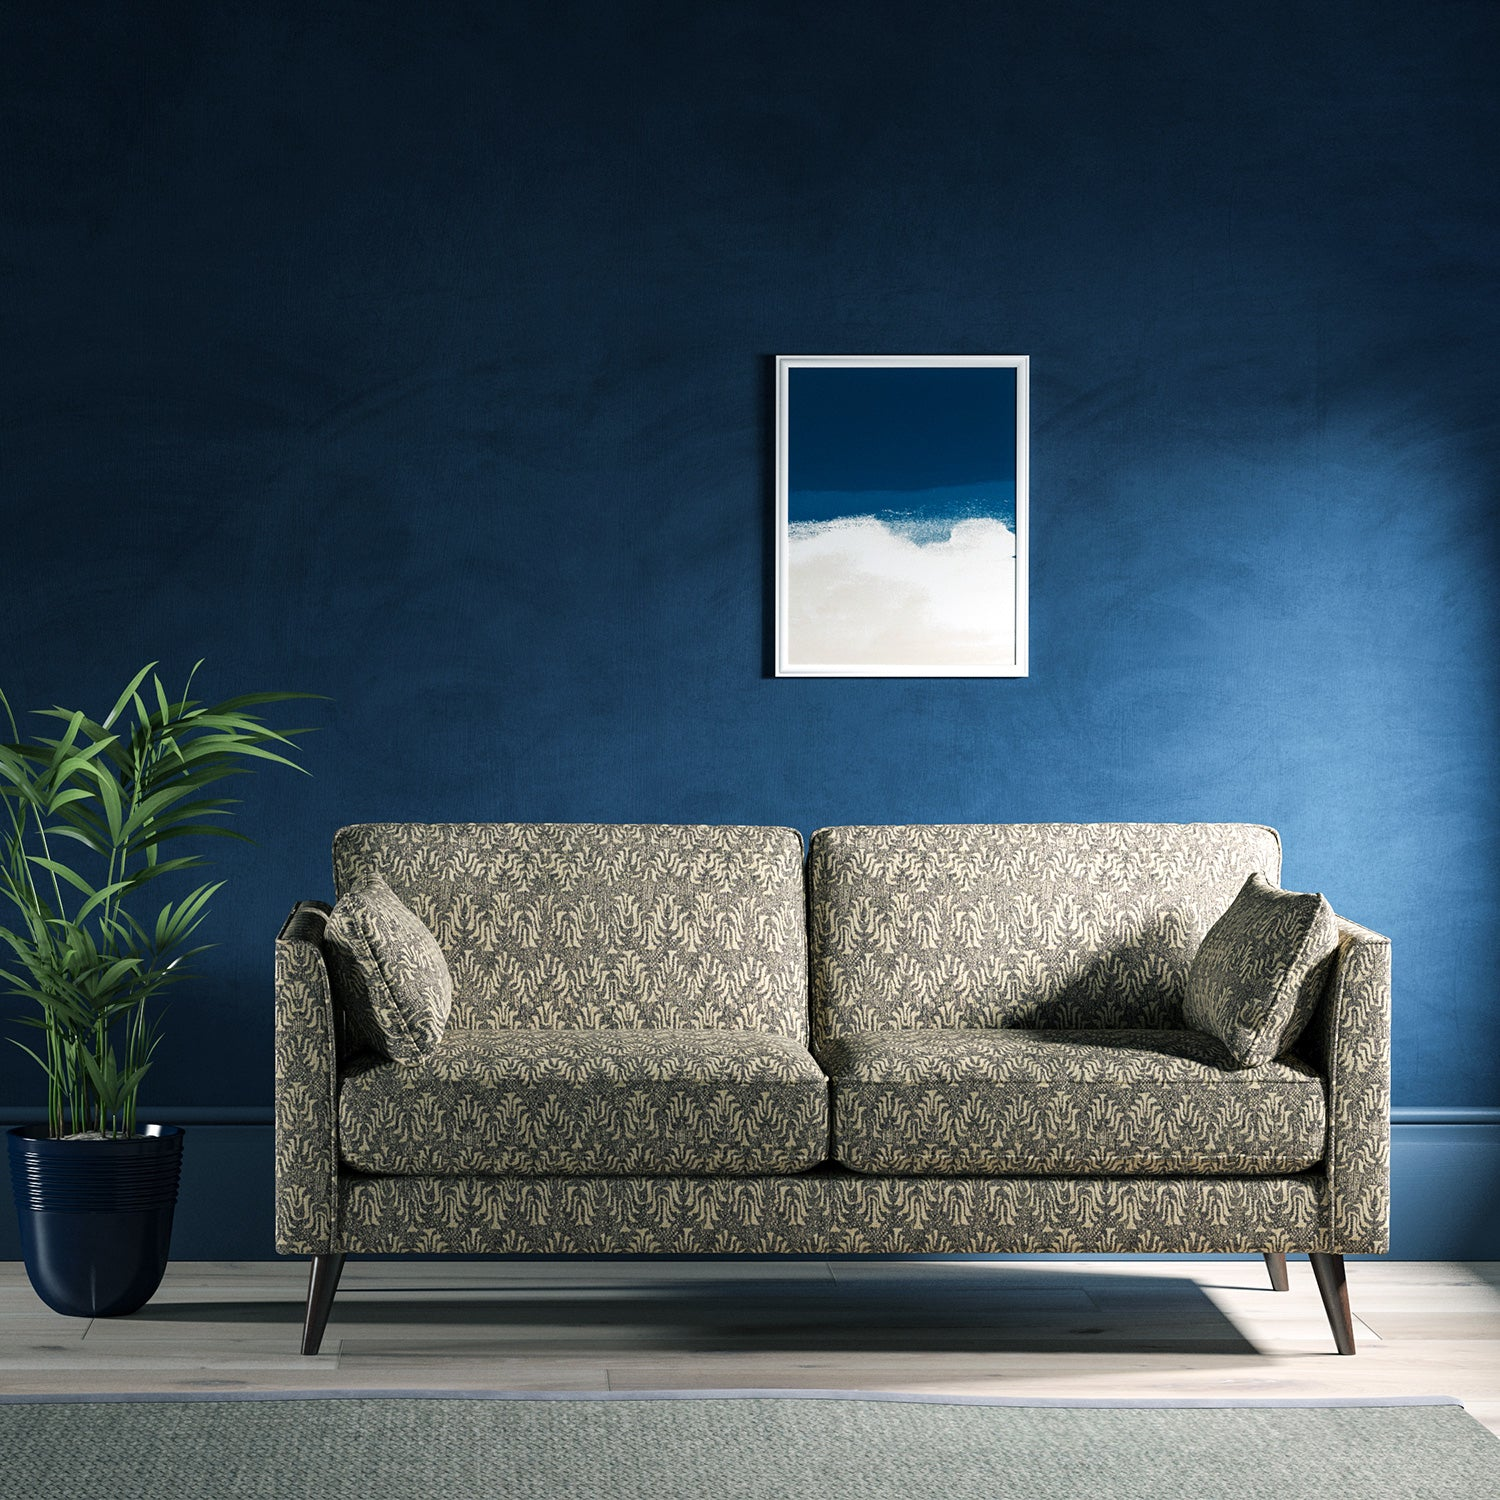 Sofa upholstered in a dark grey and neutral jacquard weave upholstery fabric